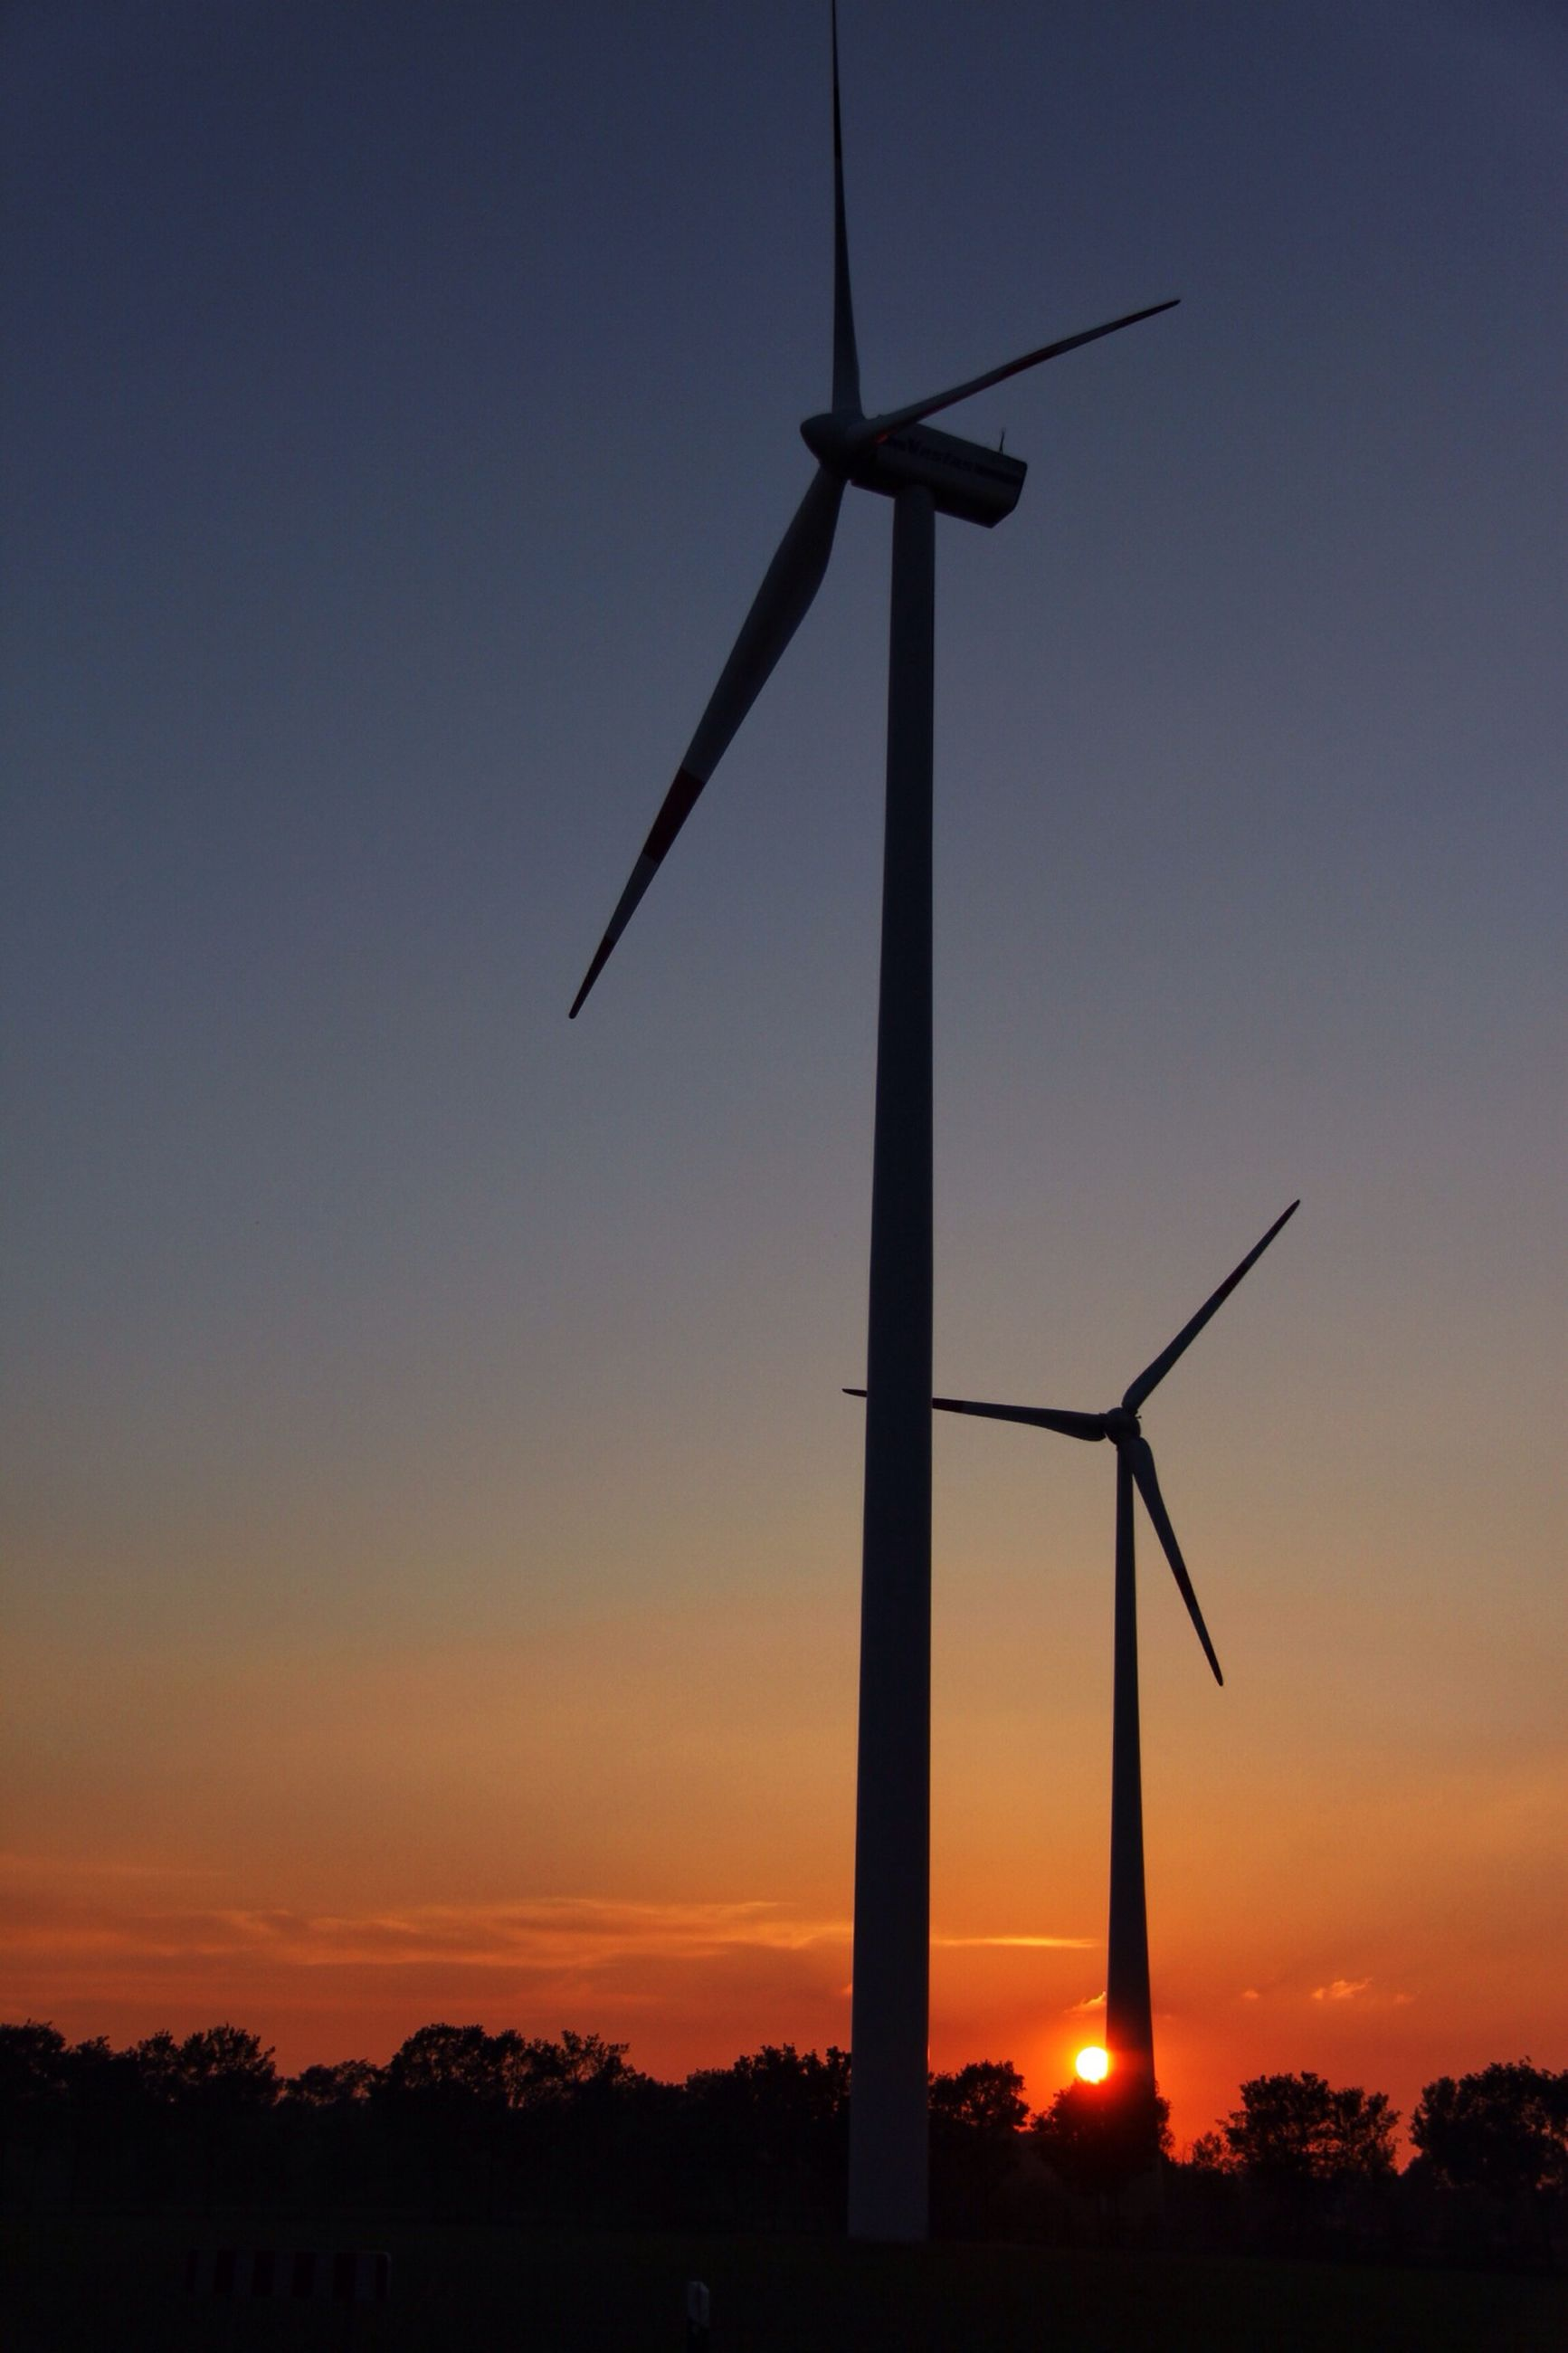 sunset, wind turbine, windmill, alternative energy, wind power, renewable energy, environmental conservation, fuel and power generation, silhouette, traditional windmill, sky, sun, orange color, landscape, rural scene, technology, field, nature, outdoors, religion